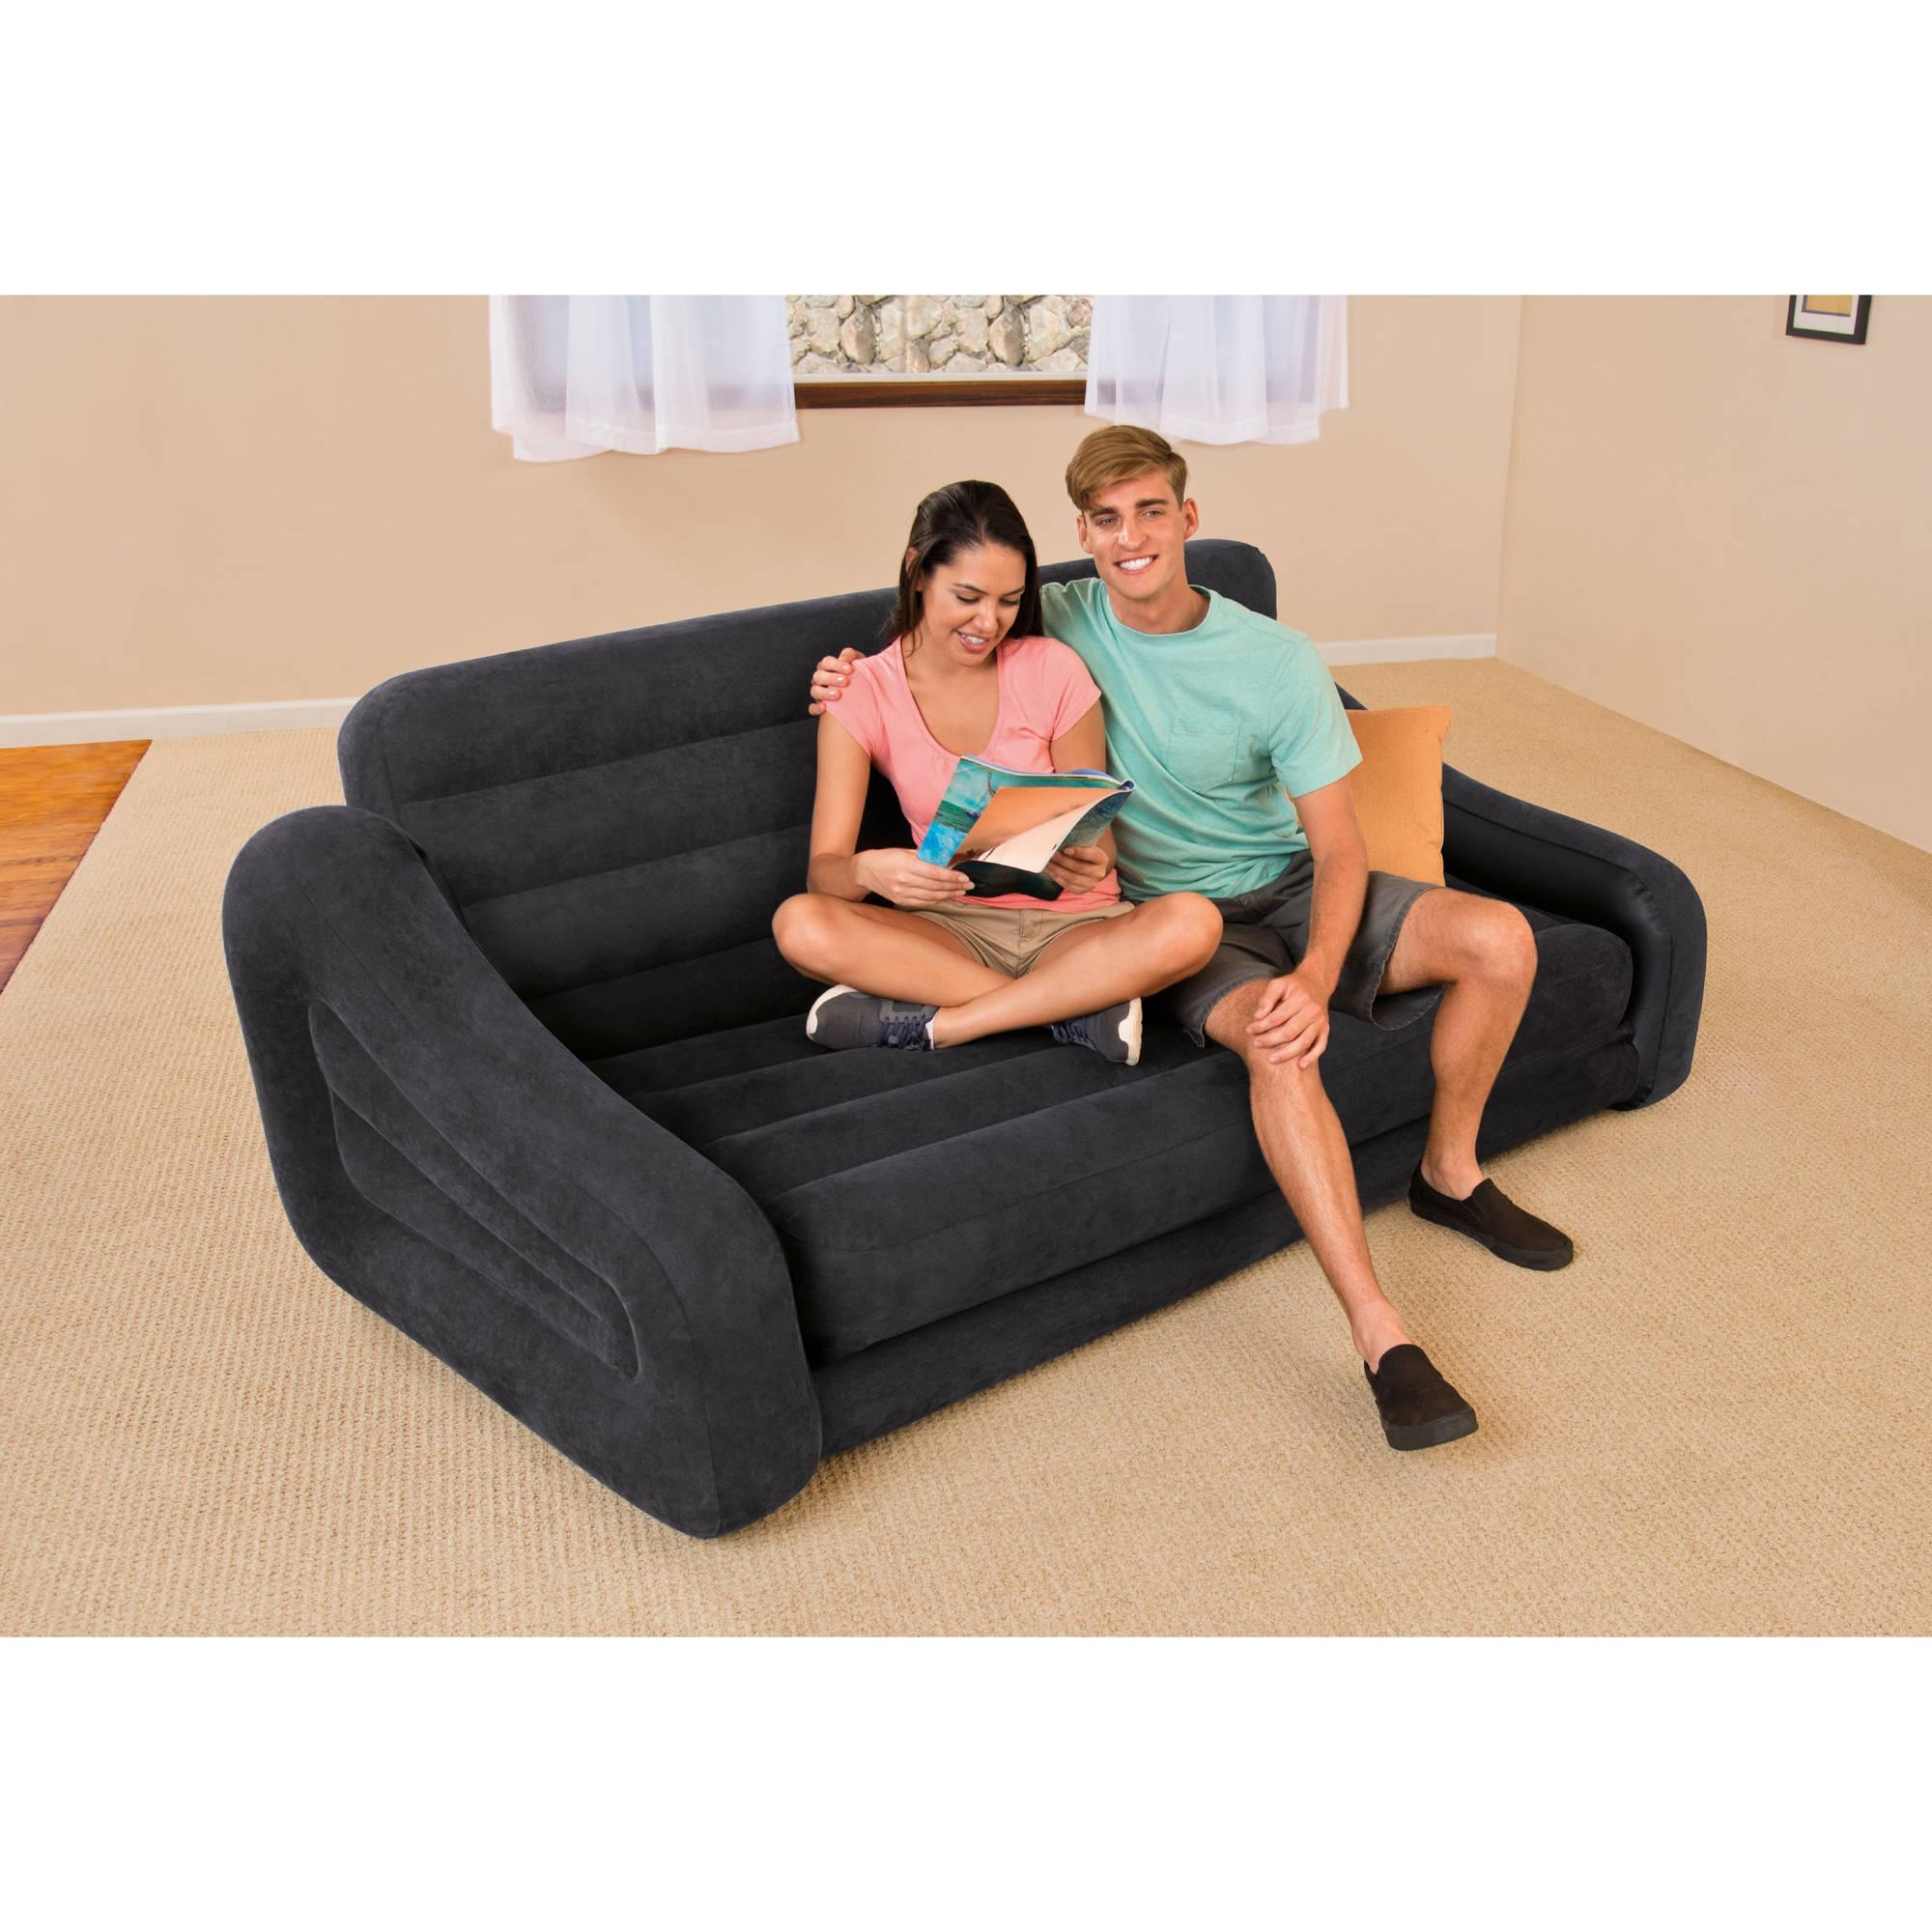 Intex Queen Inflatable Pull Out Sofa Bed – Walmart Regarding Intex Inflatable Pull Out Sofas (View 3 of 20)